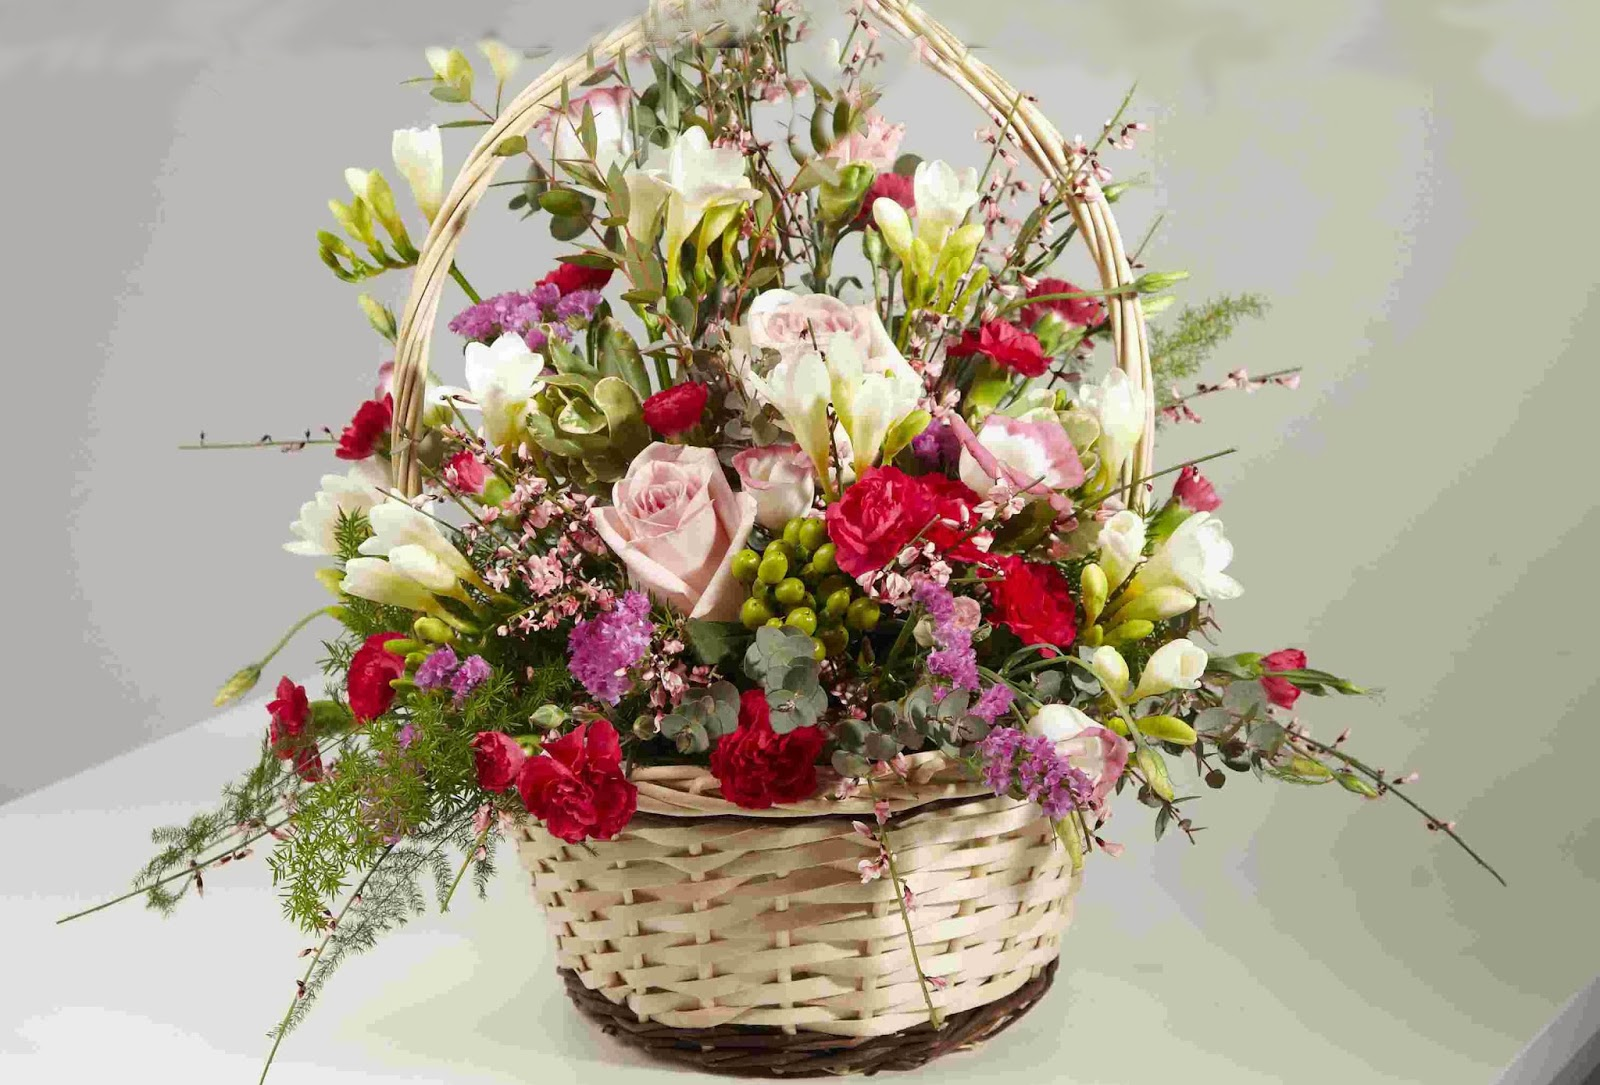 Images Of Flower Baskets : Flowers baskets hd wallpapers free download unique